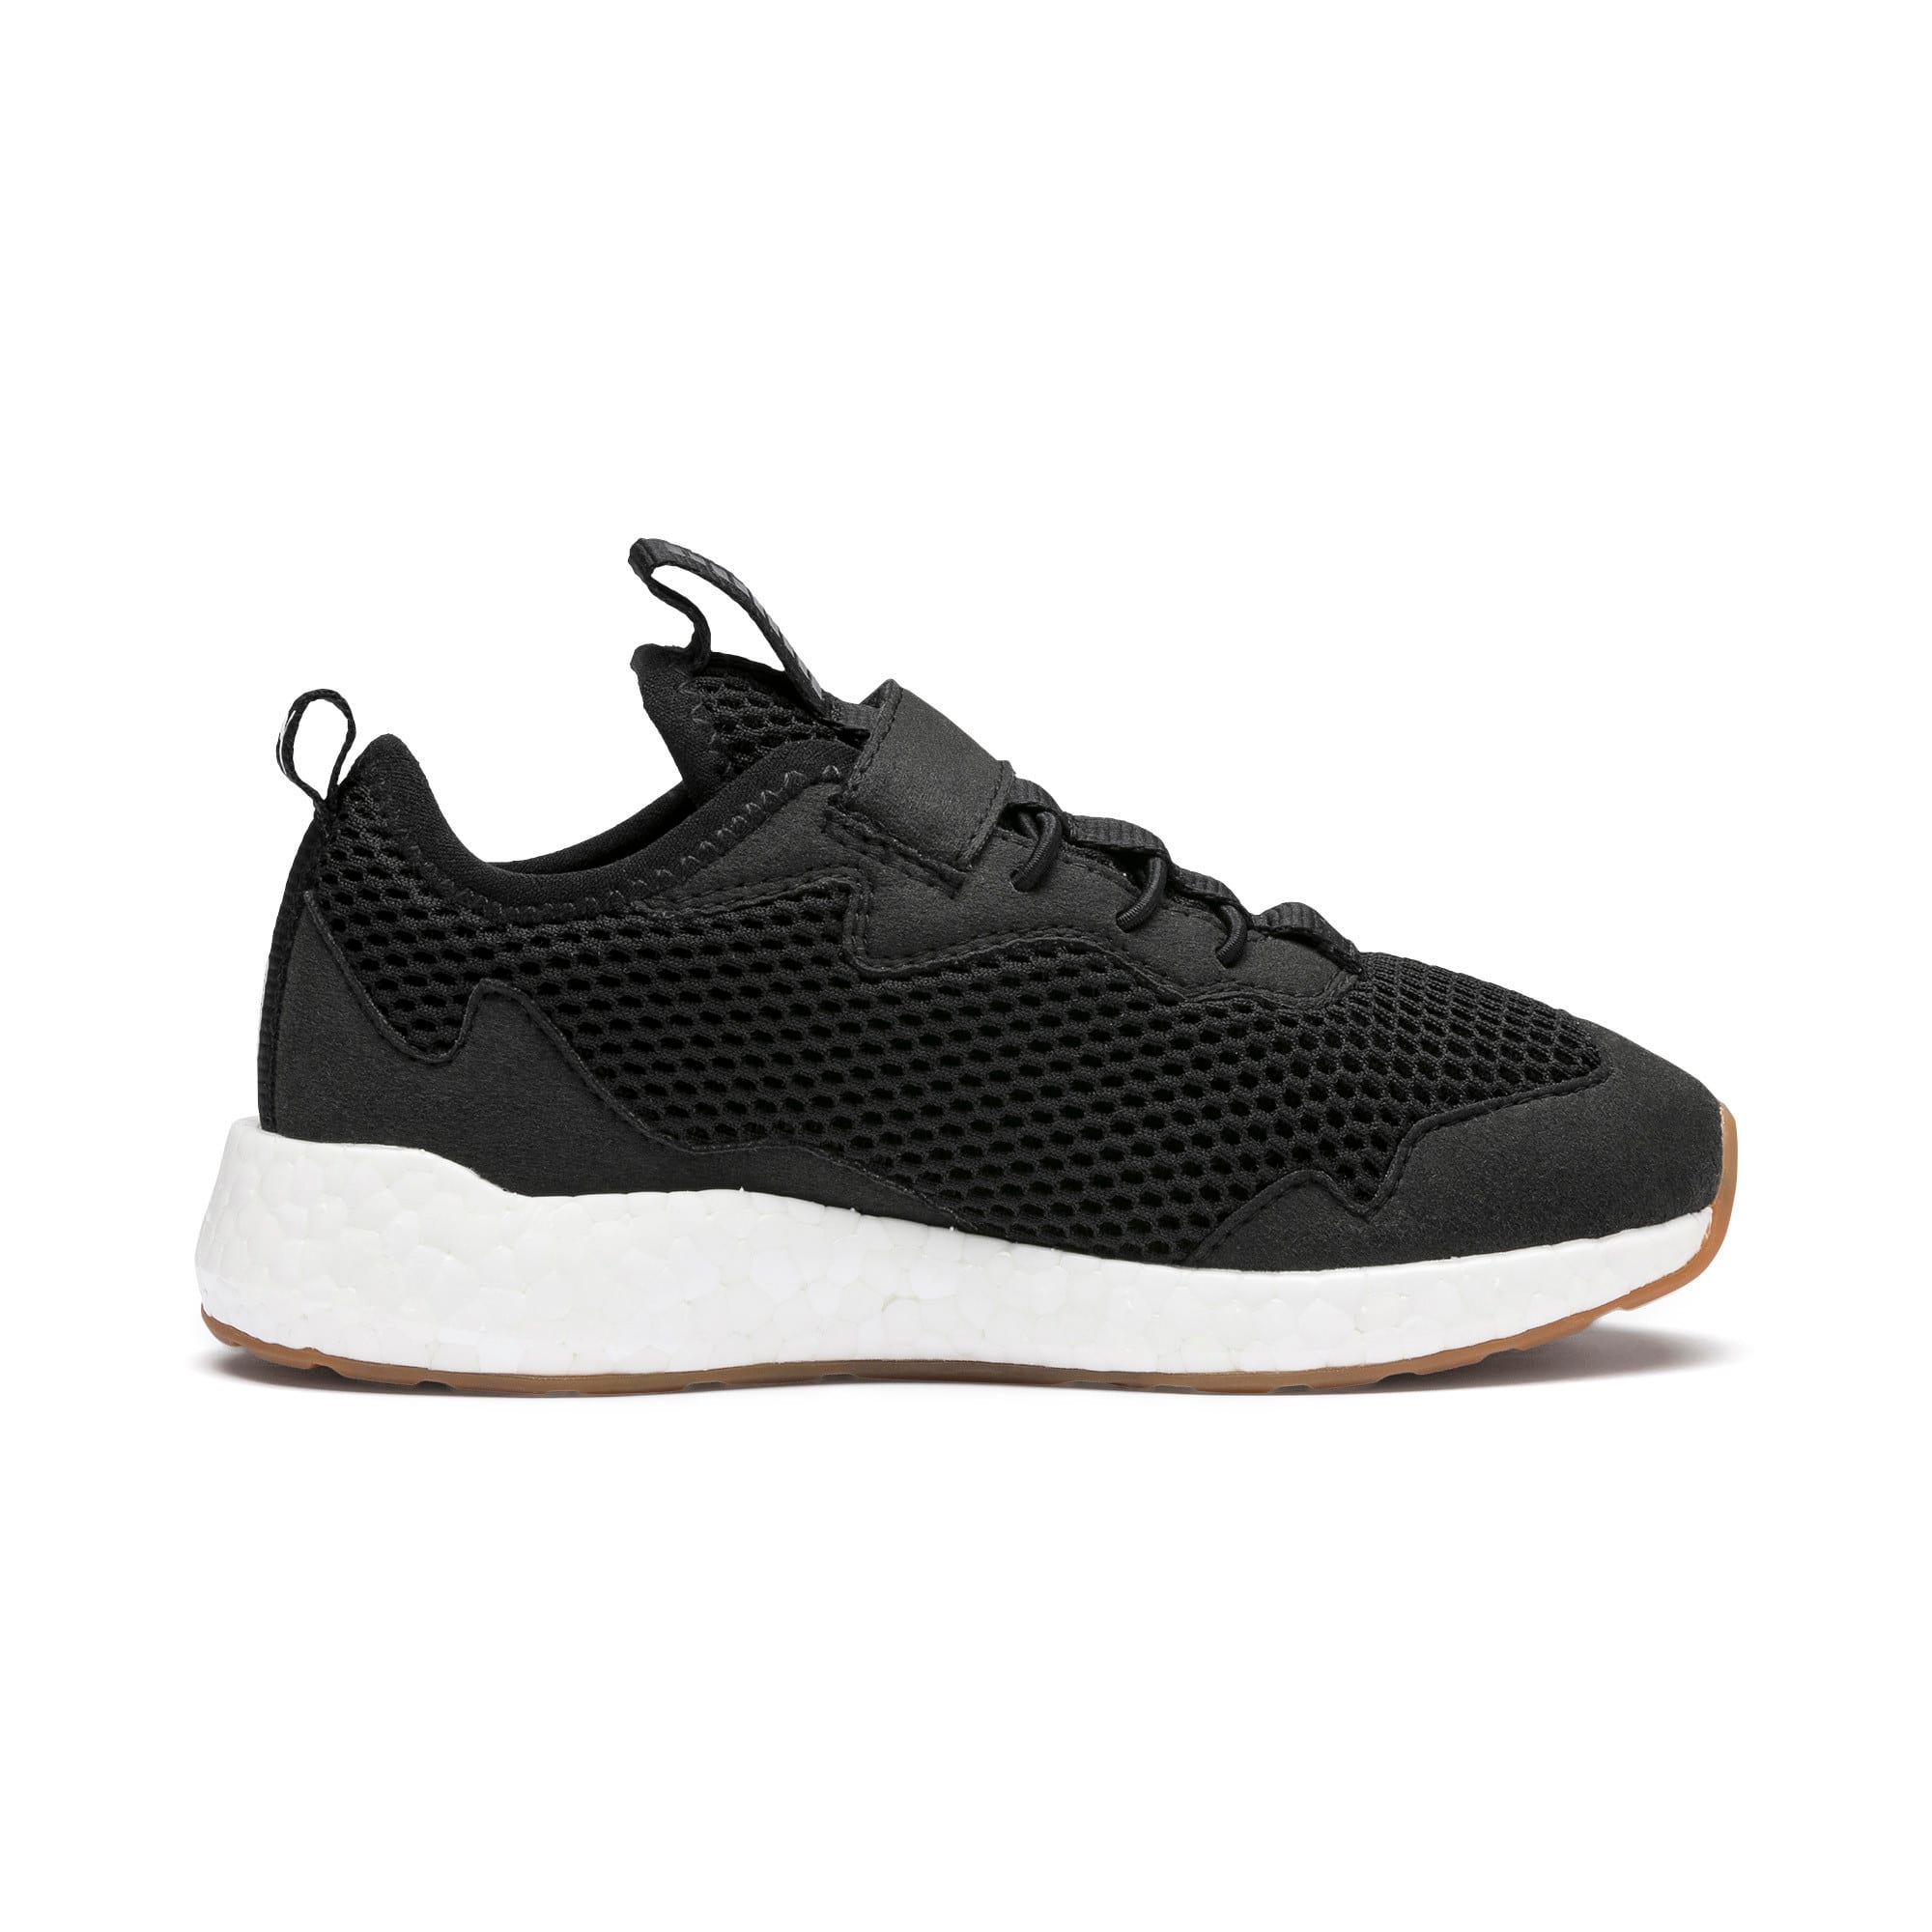 Thumbnail 5 of NRGY Neko Skim AC Kids' Trainers, Puma Black-Puma White, medium